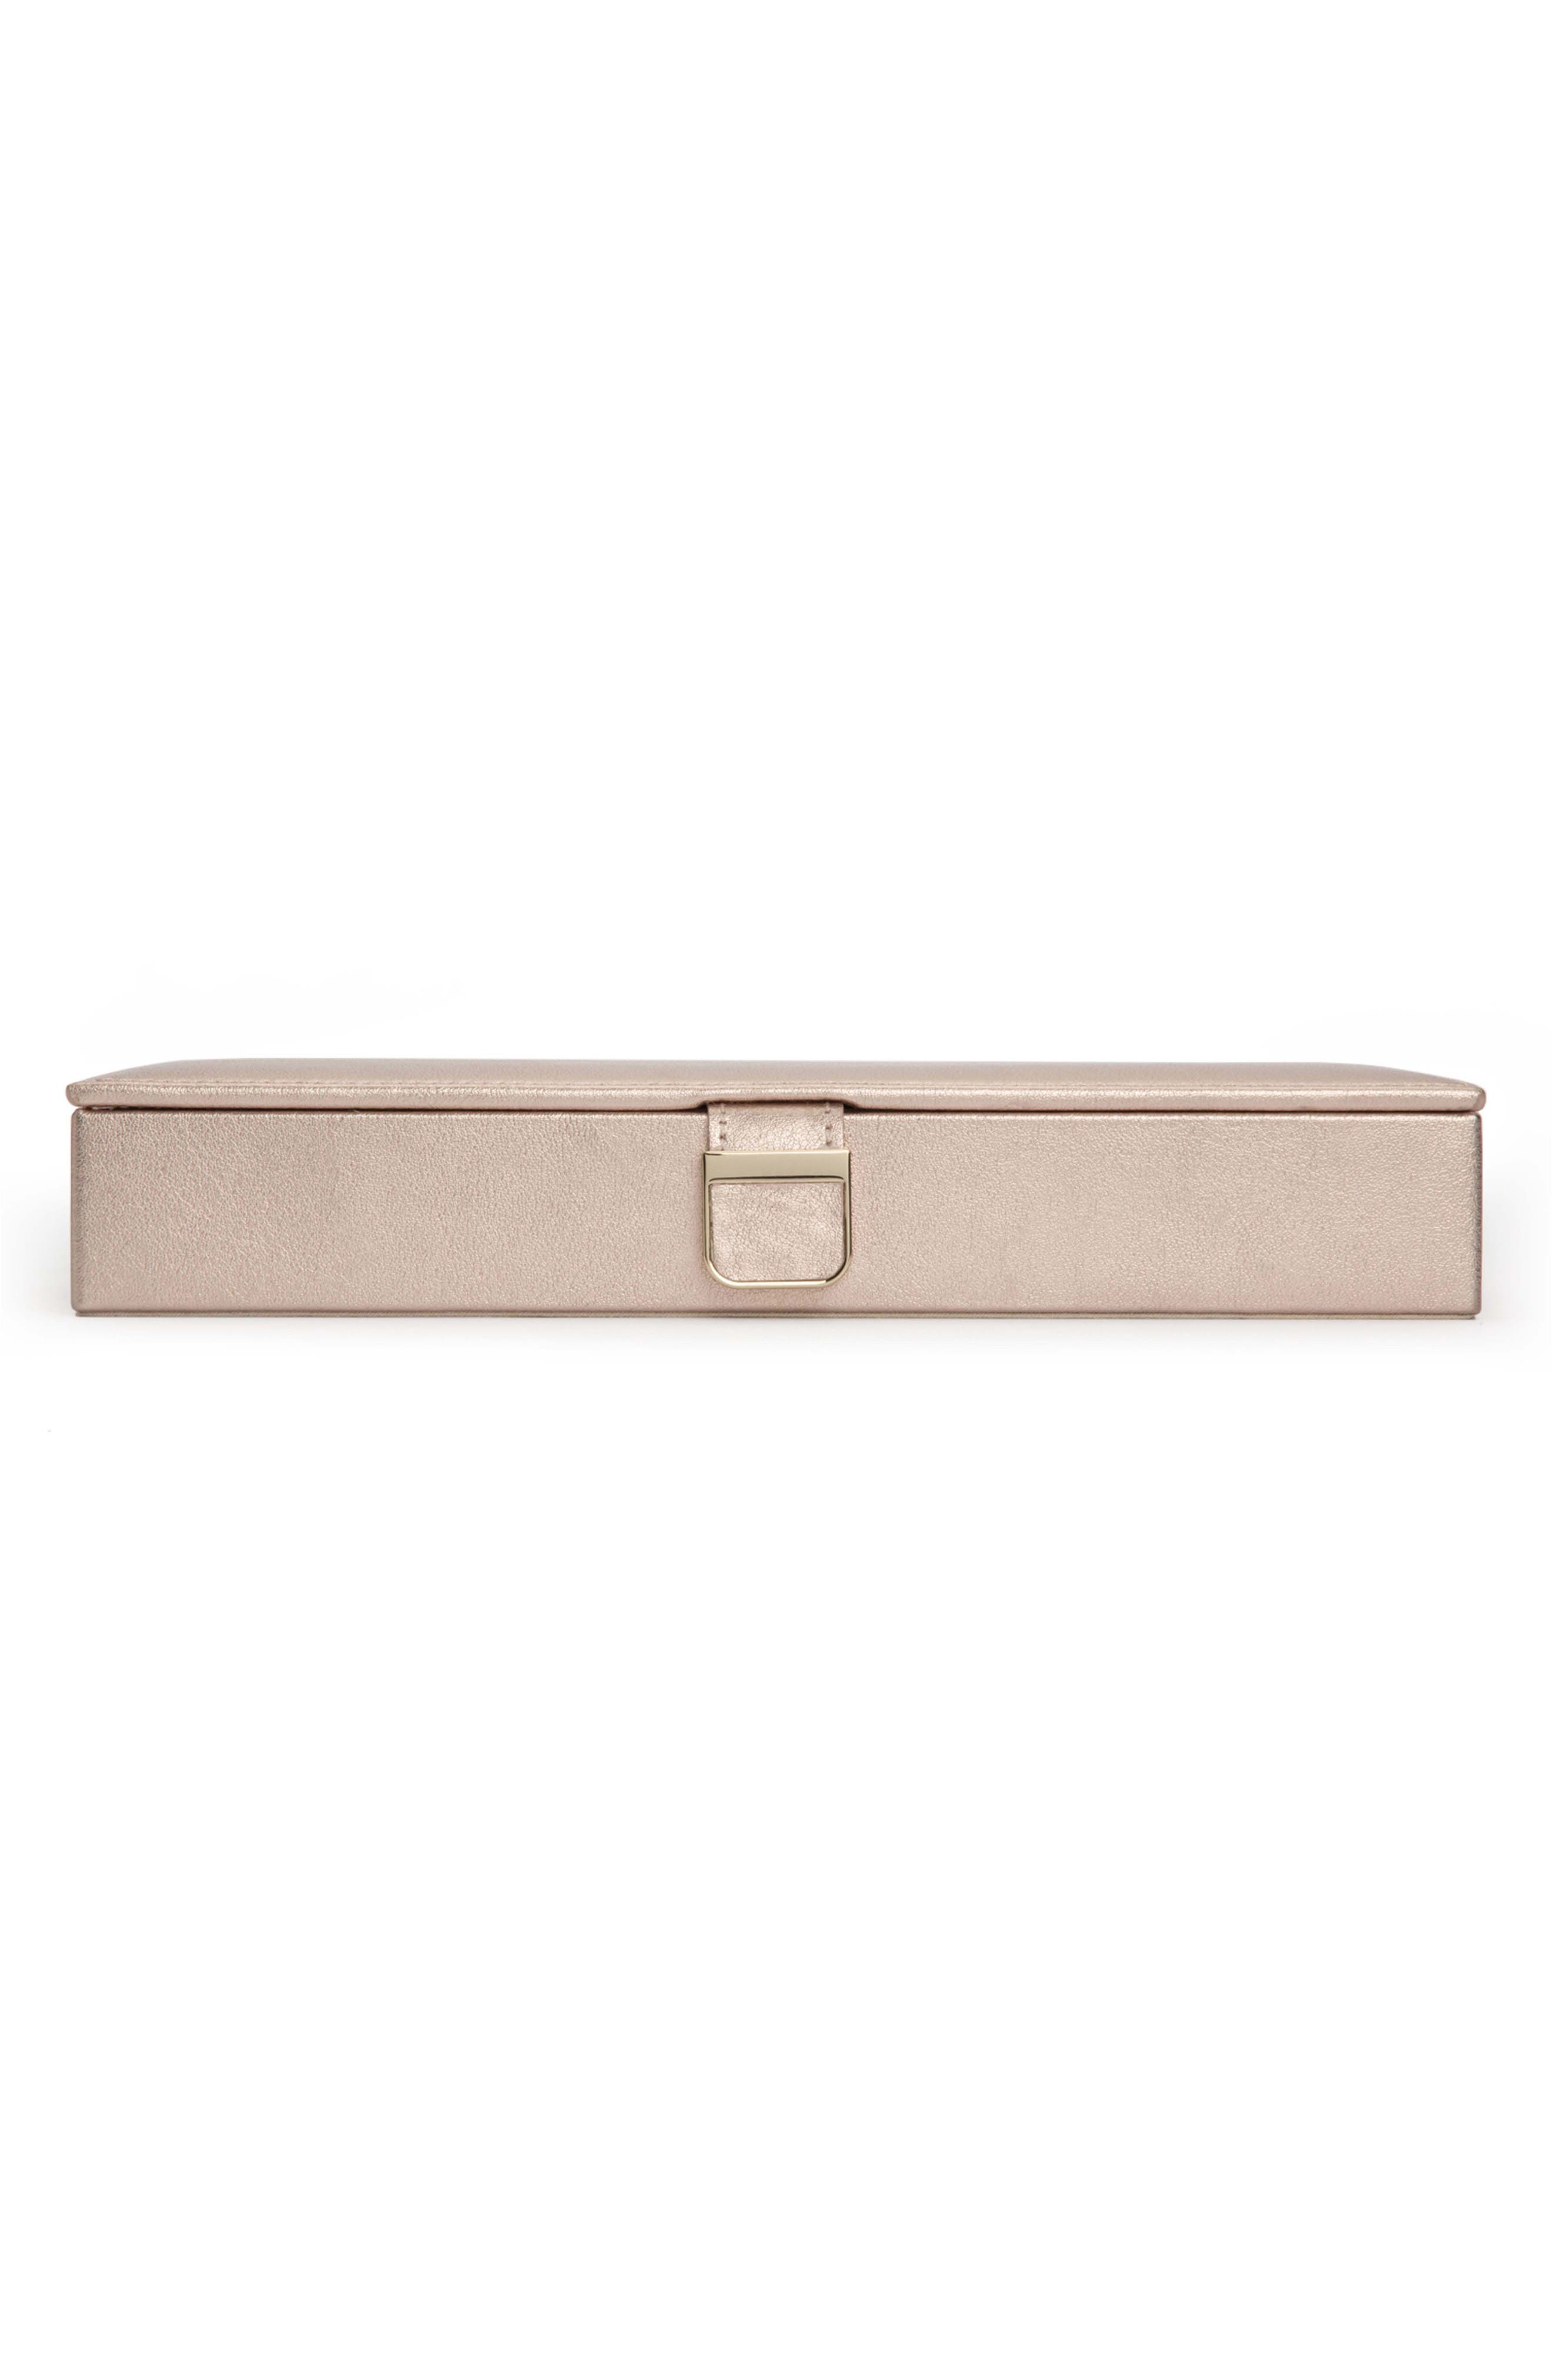 Palermo Safe Deposit Jewelry Box,                         Main,                         color, ROSE GOLD